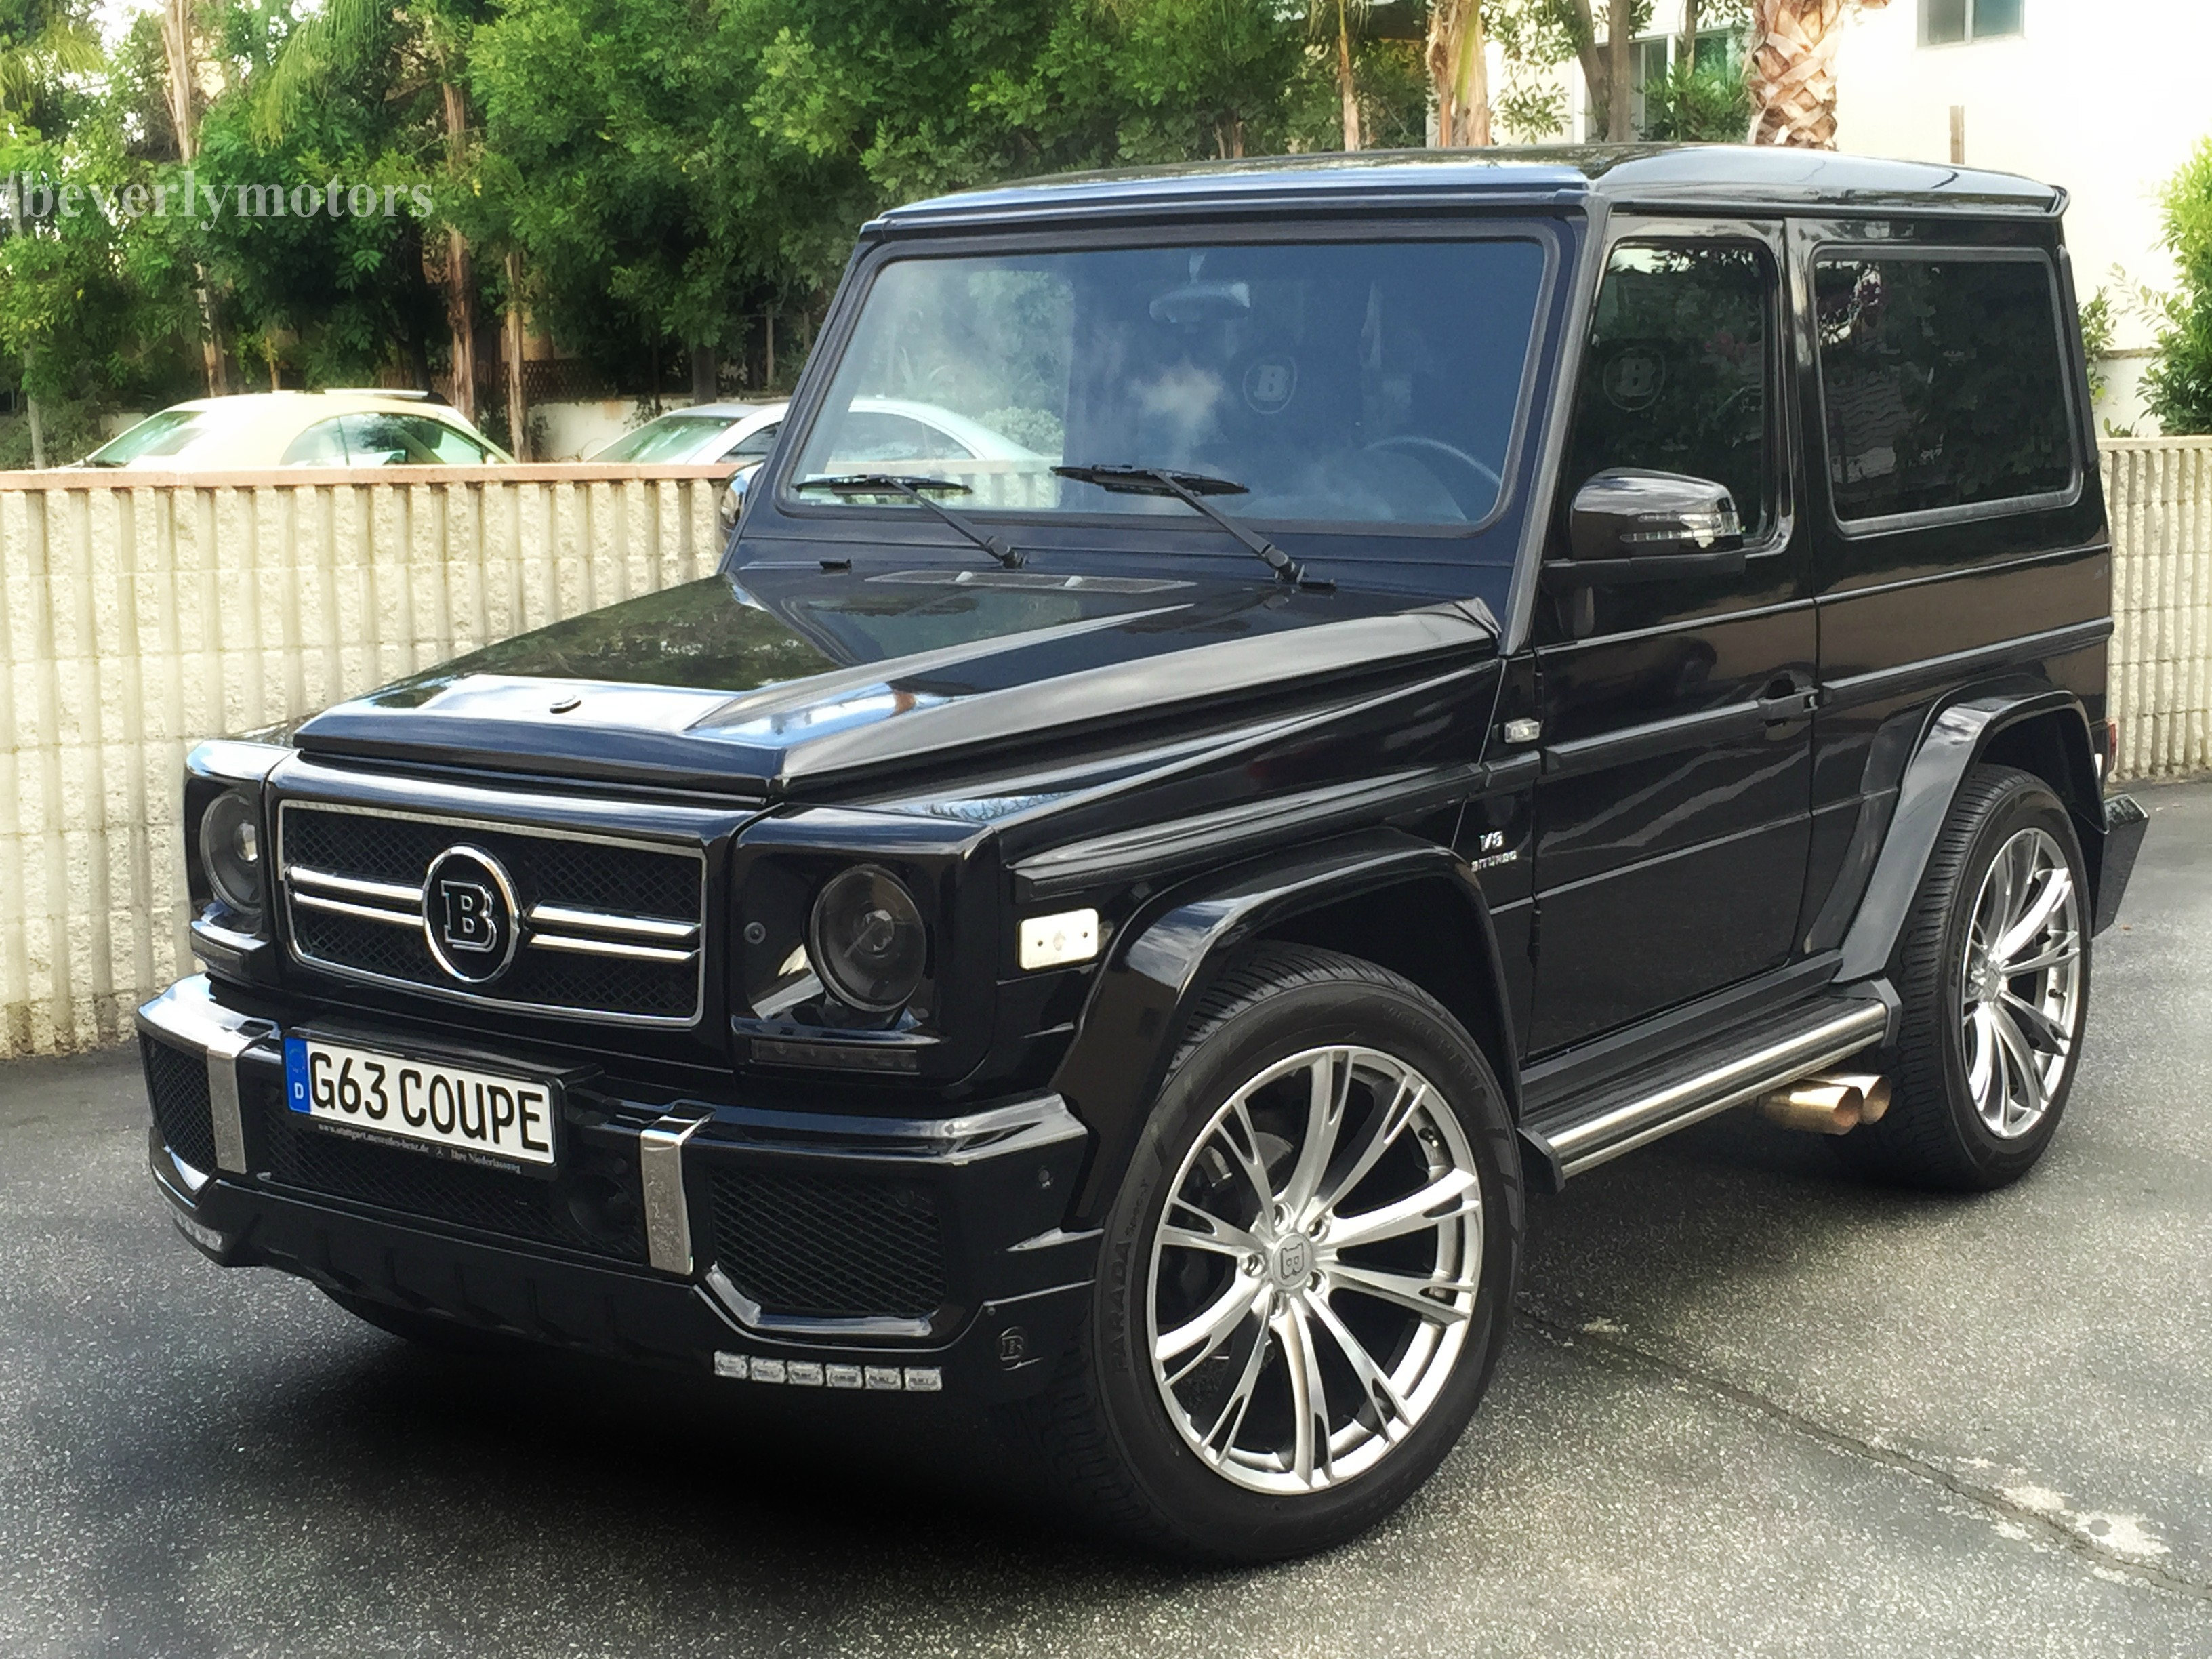 2001 mercedes benz g320 coupe g63 brabus black on black g55 g550 amg. Black Bedroom Furniture Sets. Home Design Ideas